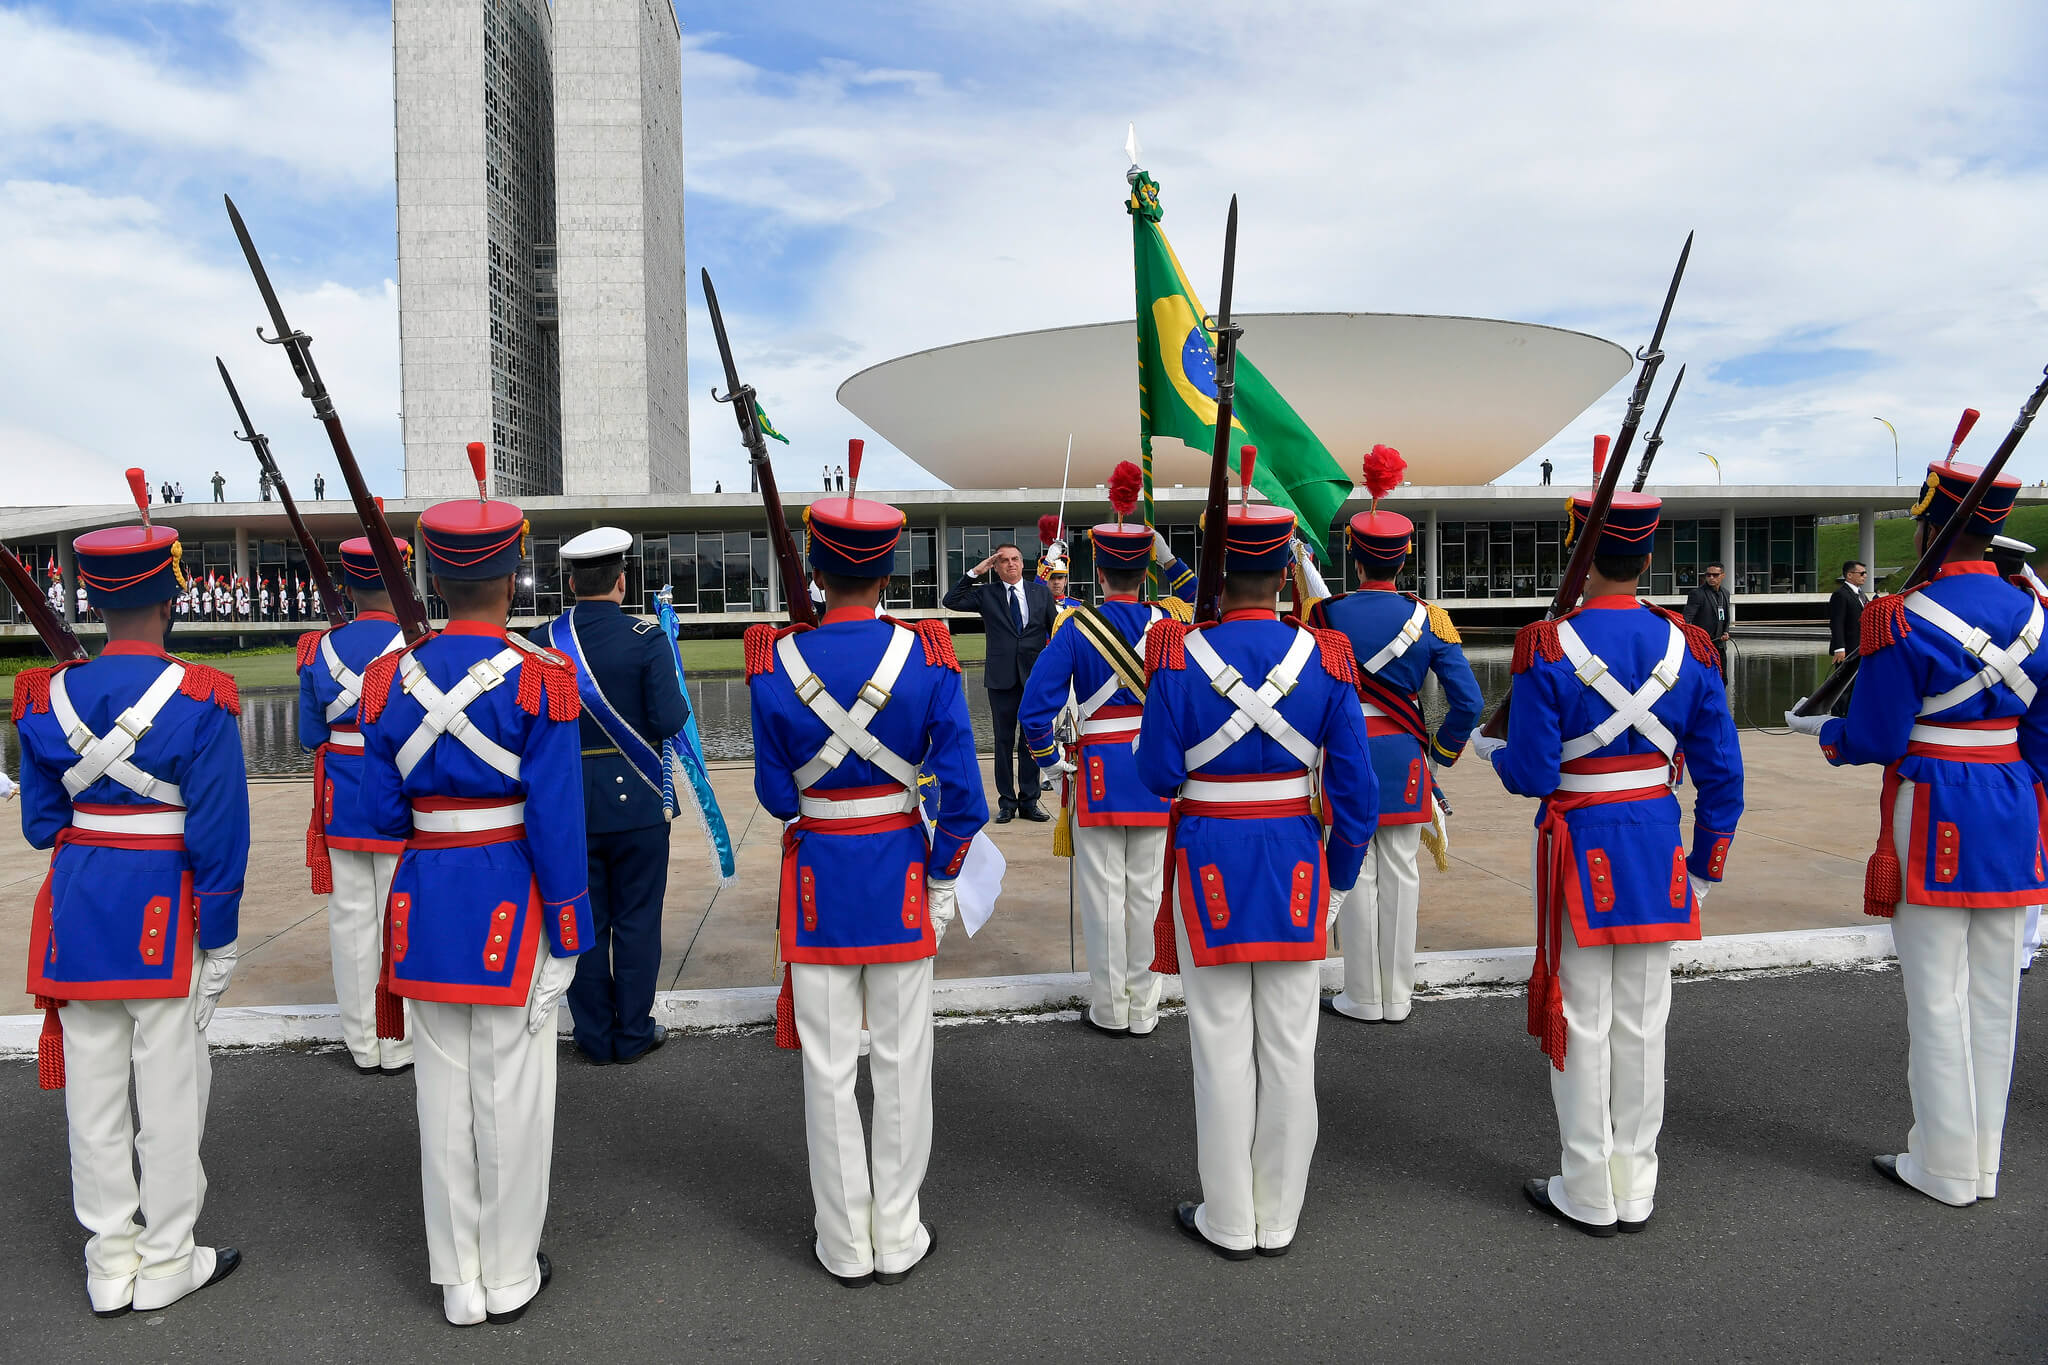 inauguration of president Bolsonaro